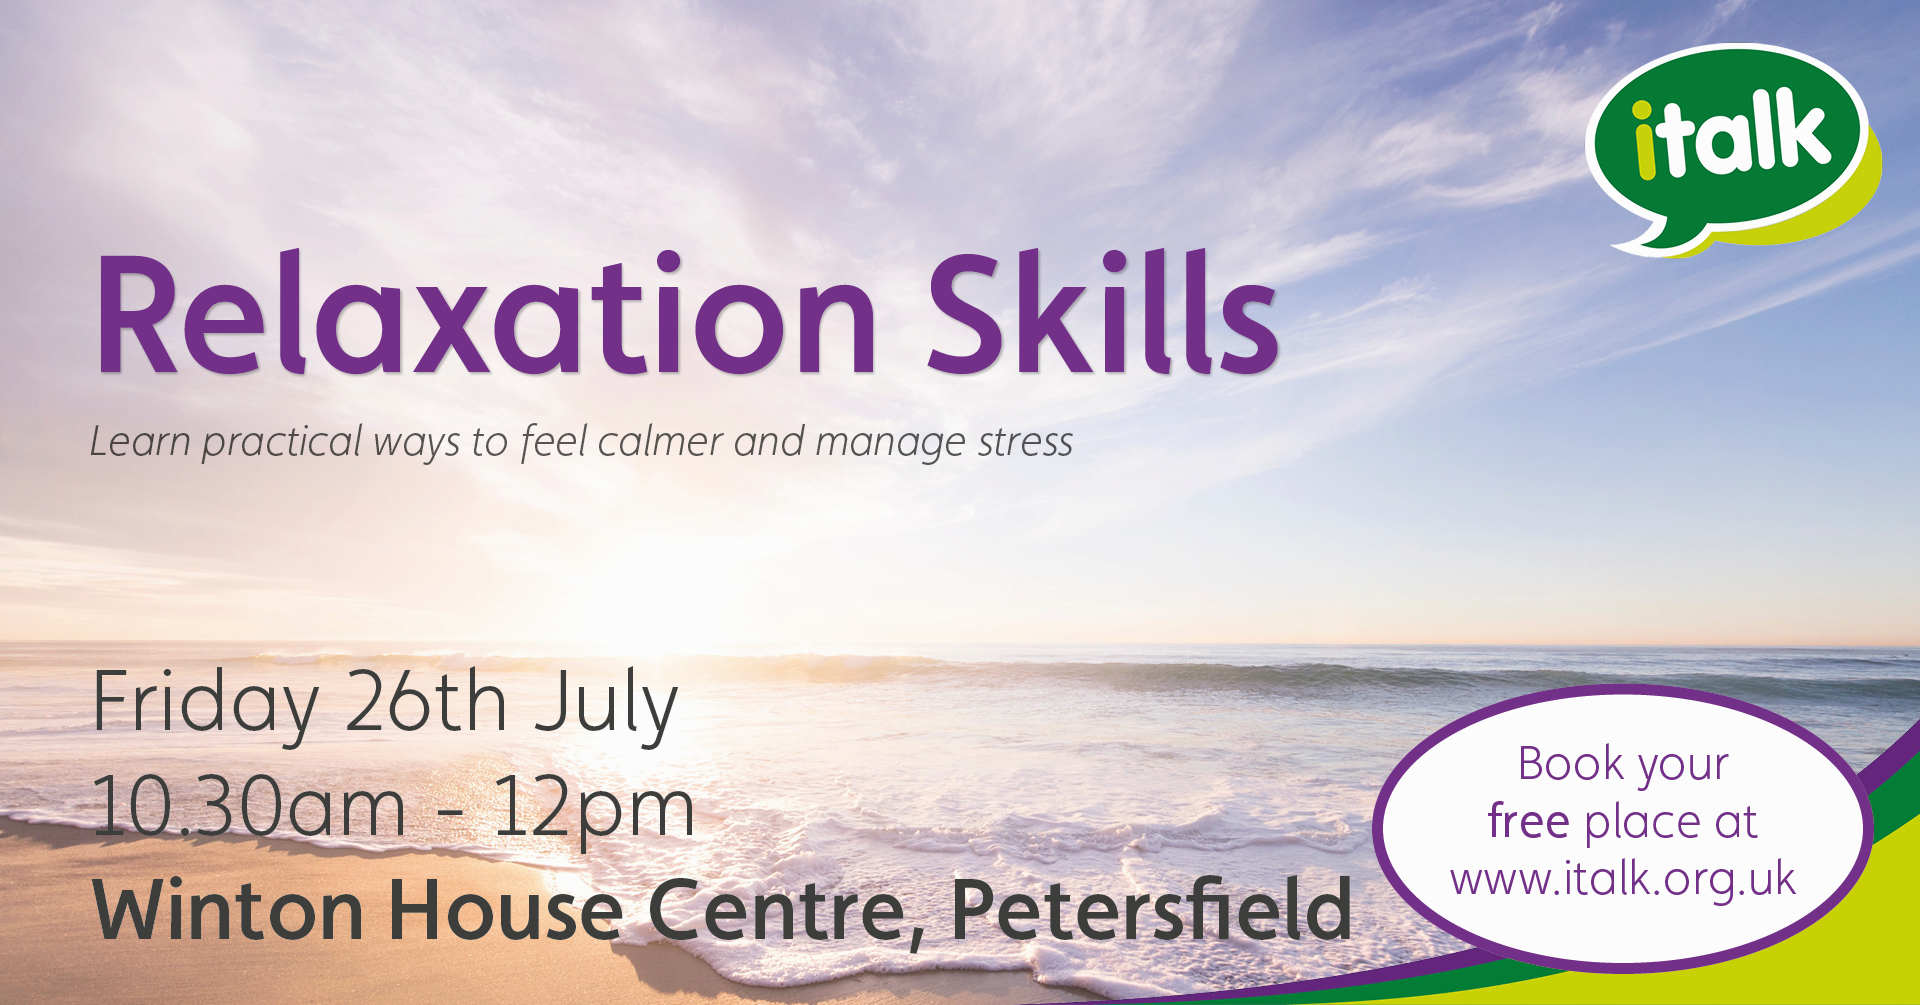 Relaxation Skills for Wellbeing